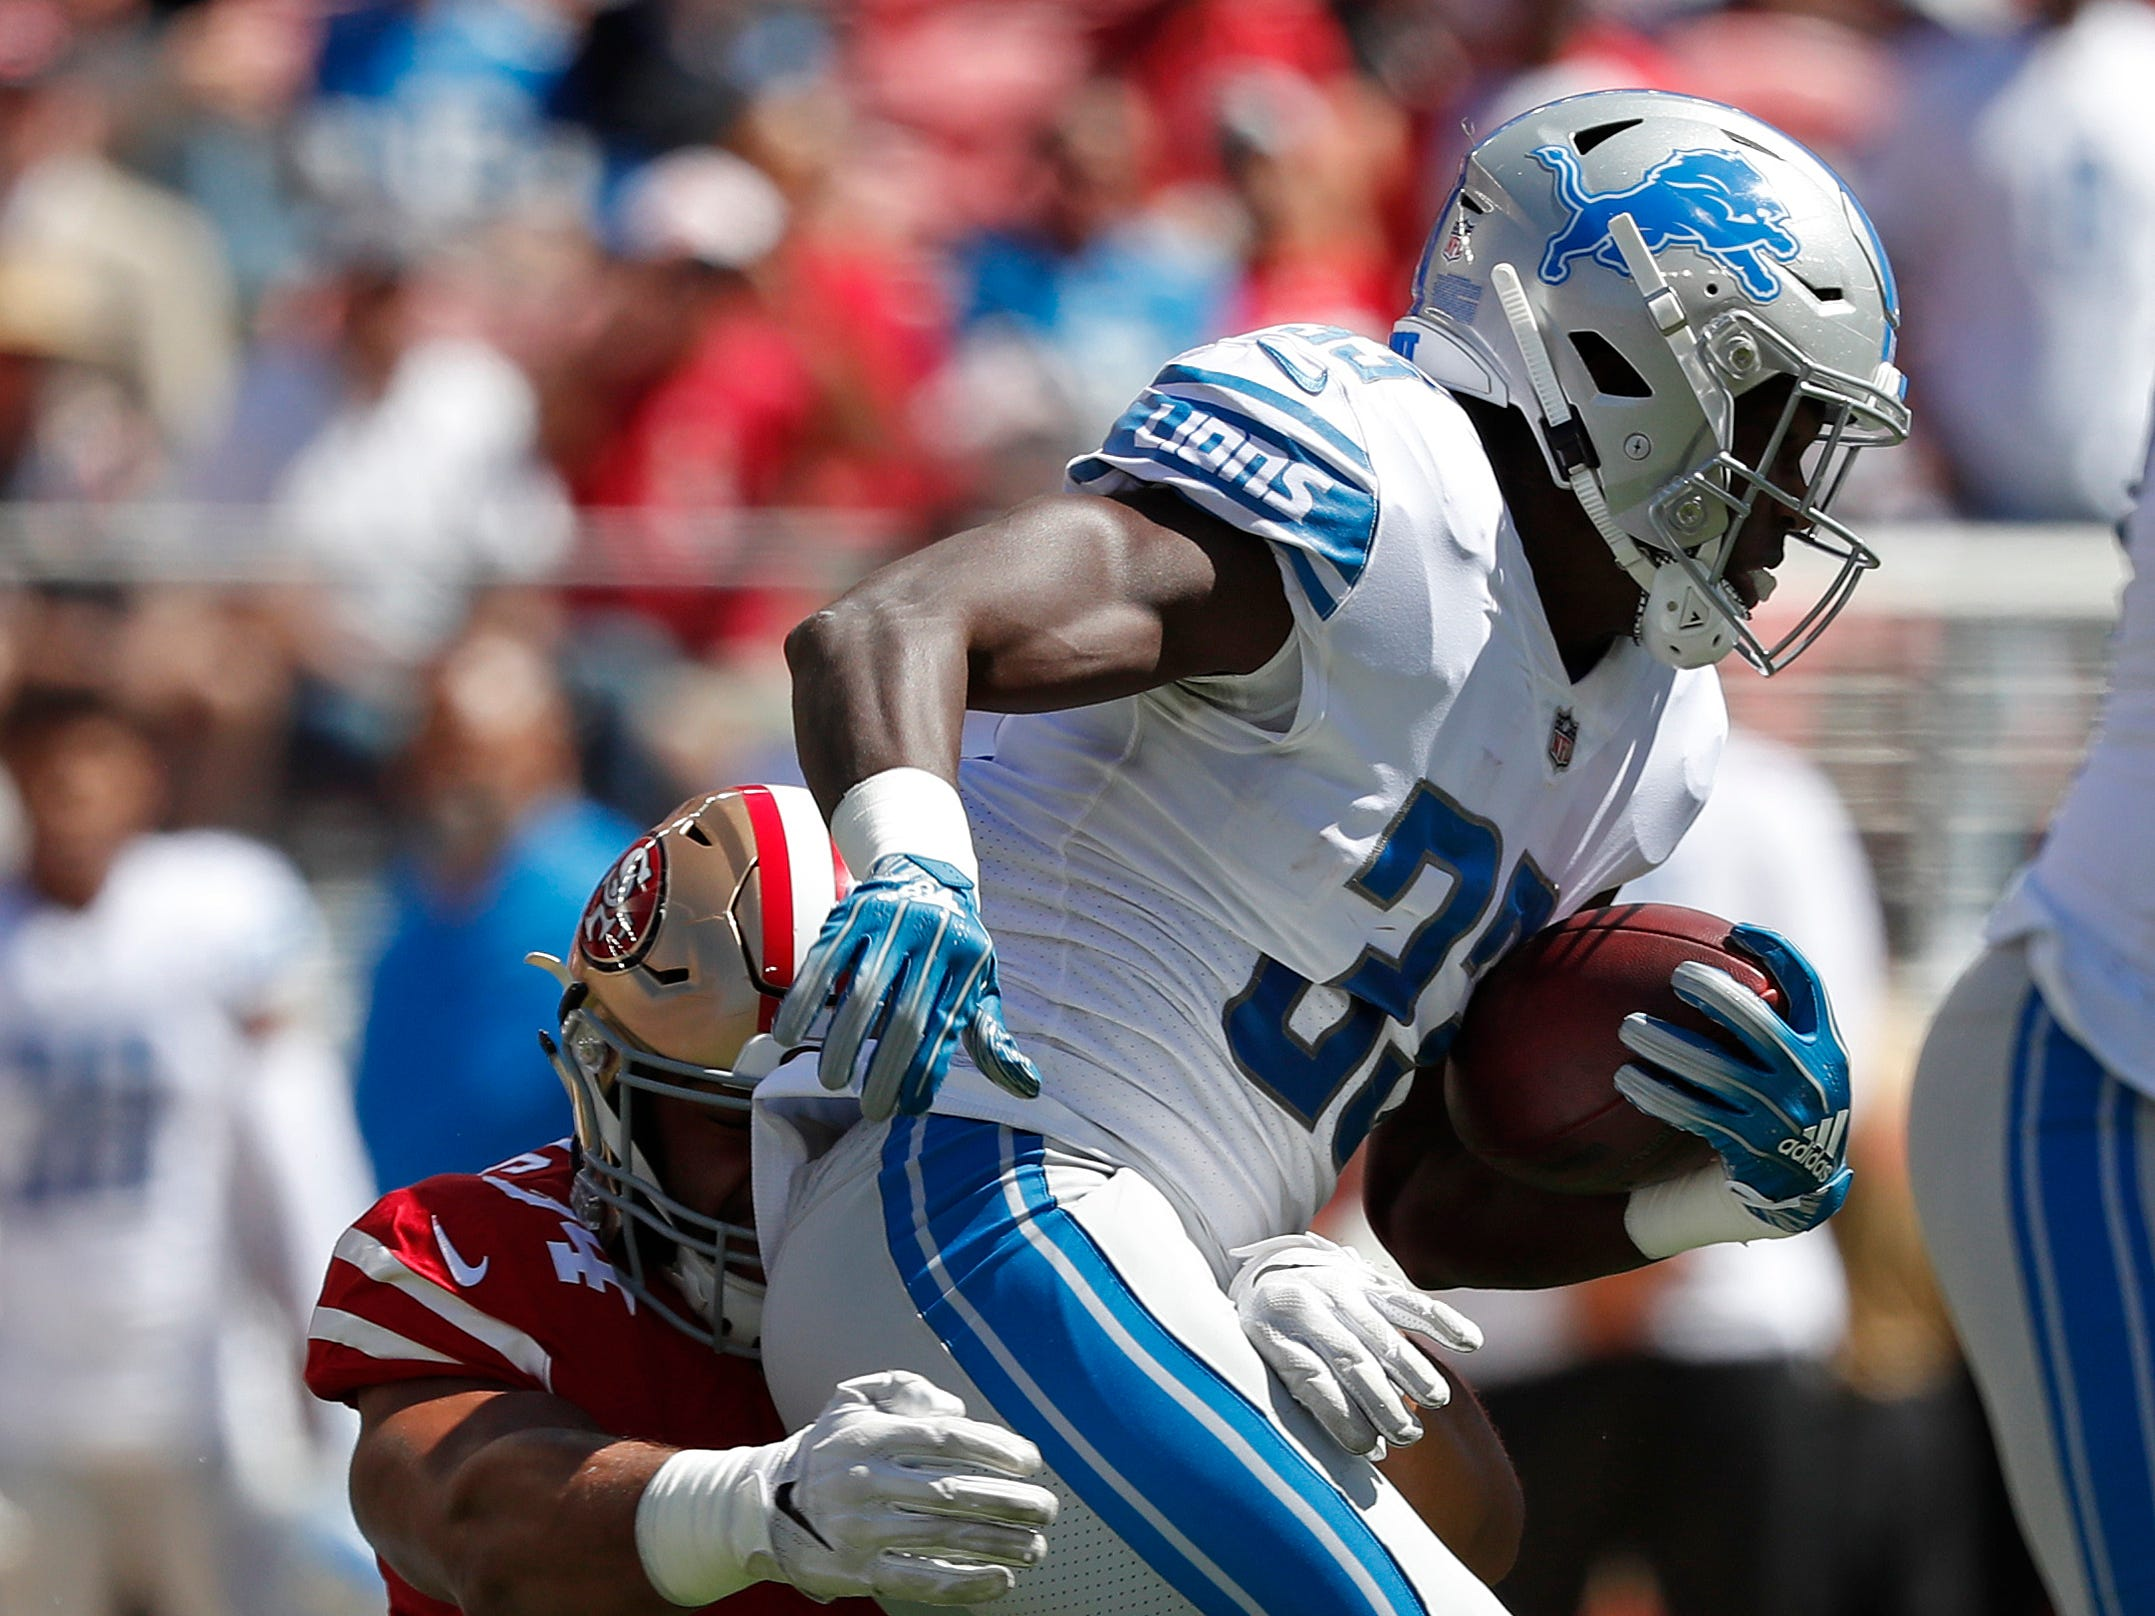 Lions running back Kerryon Johnson, right, runs with the ball against 49ers defensive end Solomon Thomas (94) during the first half on Sunday, Sept. 16, 2018, in Santa Clara, Calif.